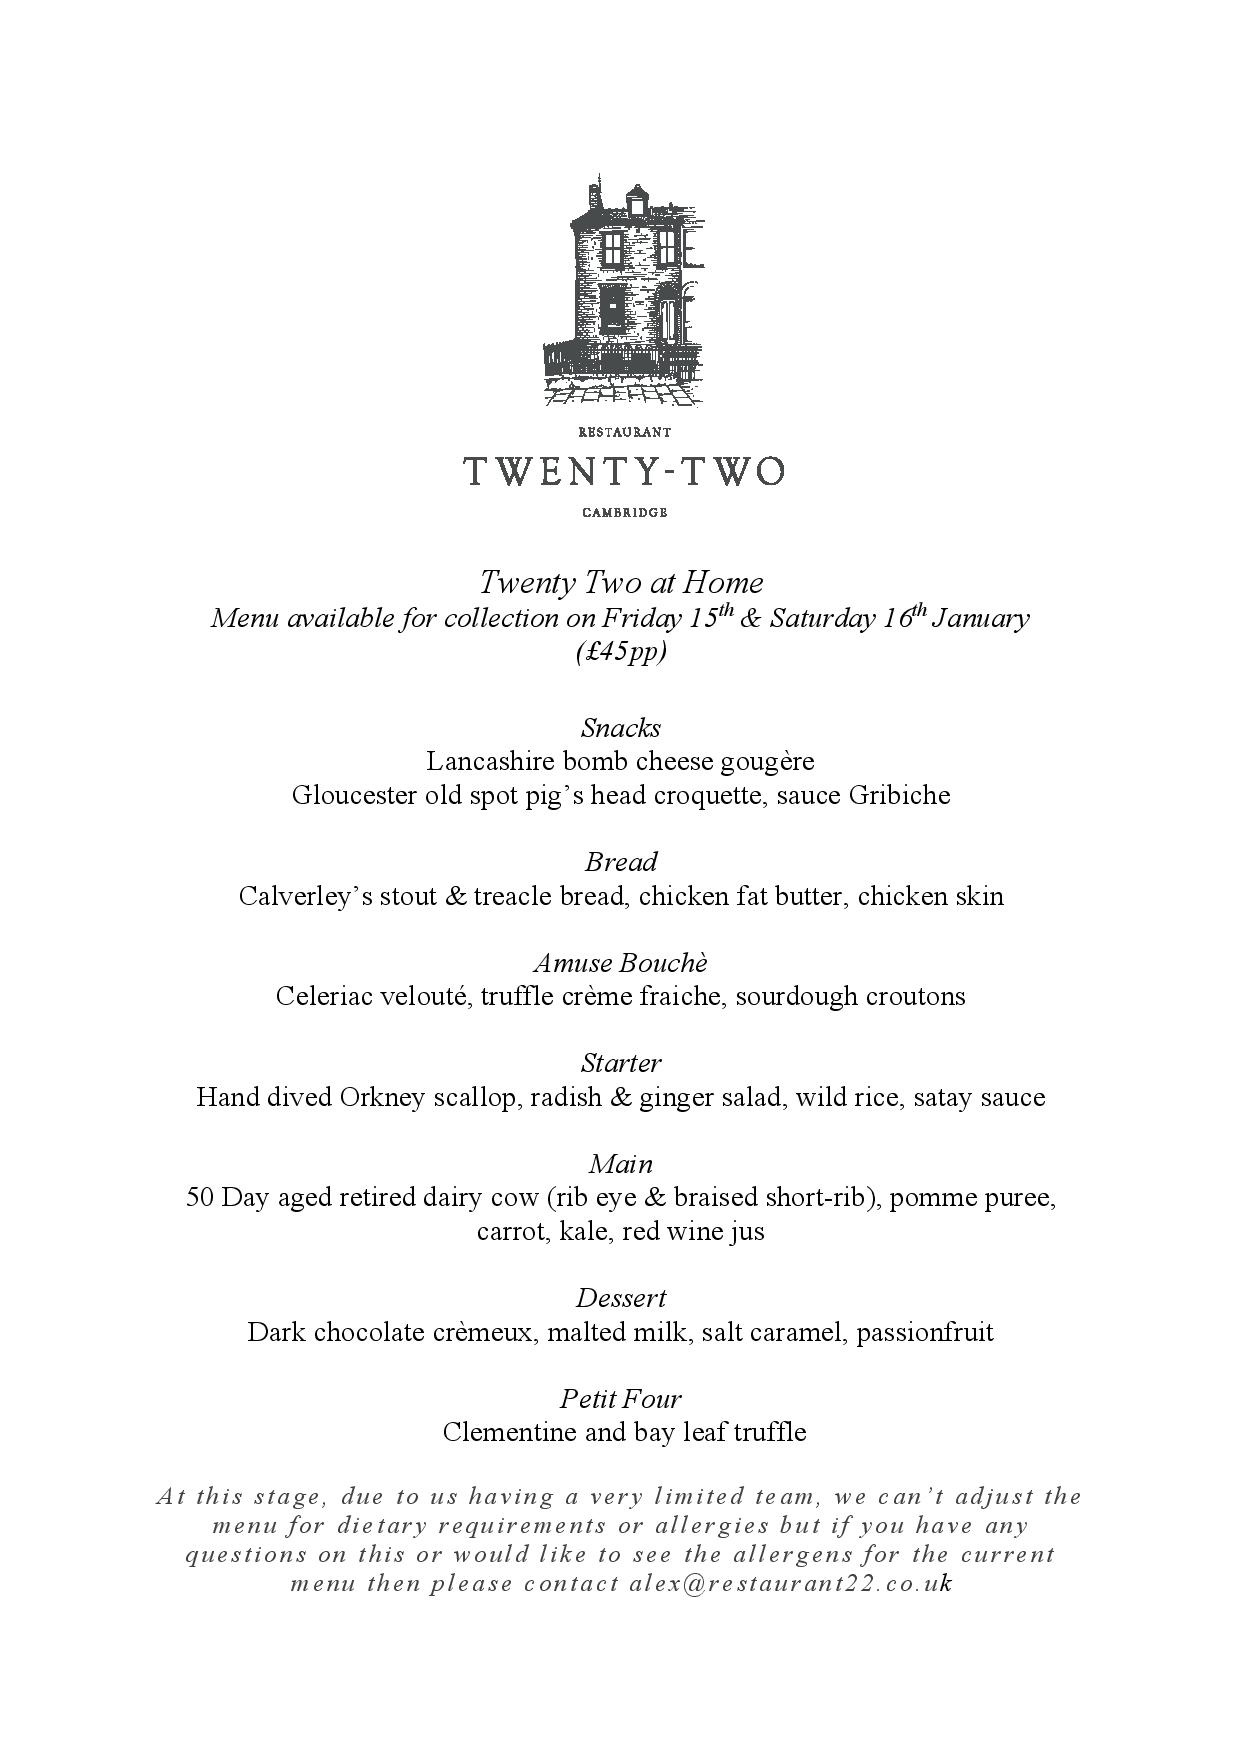 Restaurant Twenty-Two at Home - a lockdown pleasure!